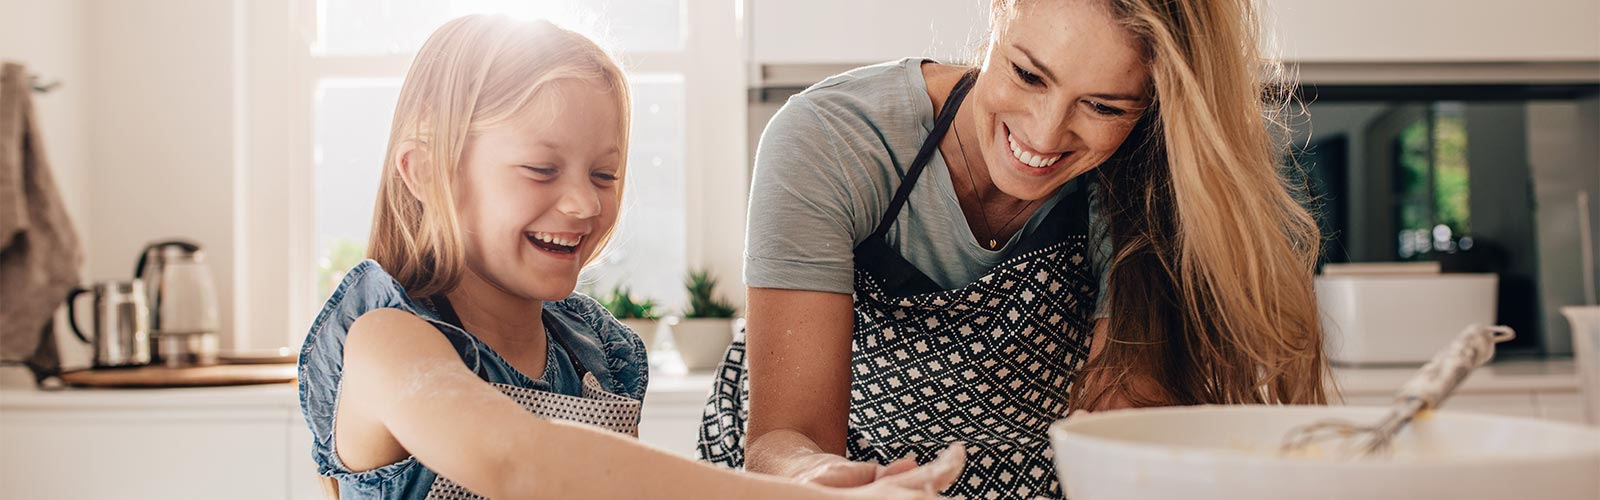 Mother and Daughter Cooking Without Roaches in Kitchen